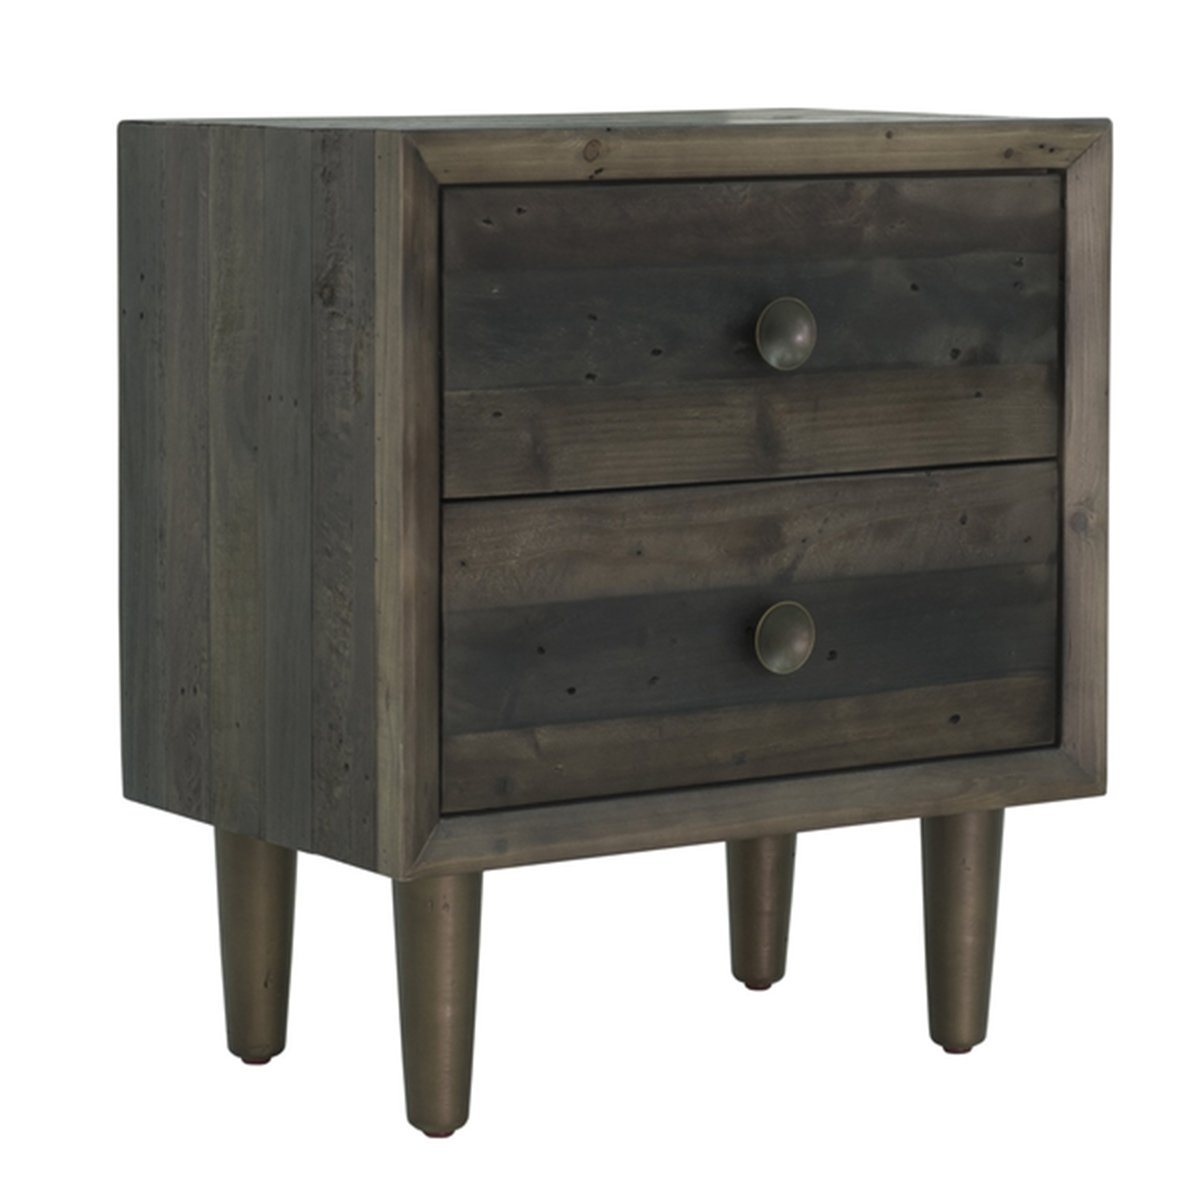 MERCHANT NIGHTSTAND - SMOKED GREY - Showhome Furniture